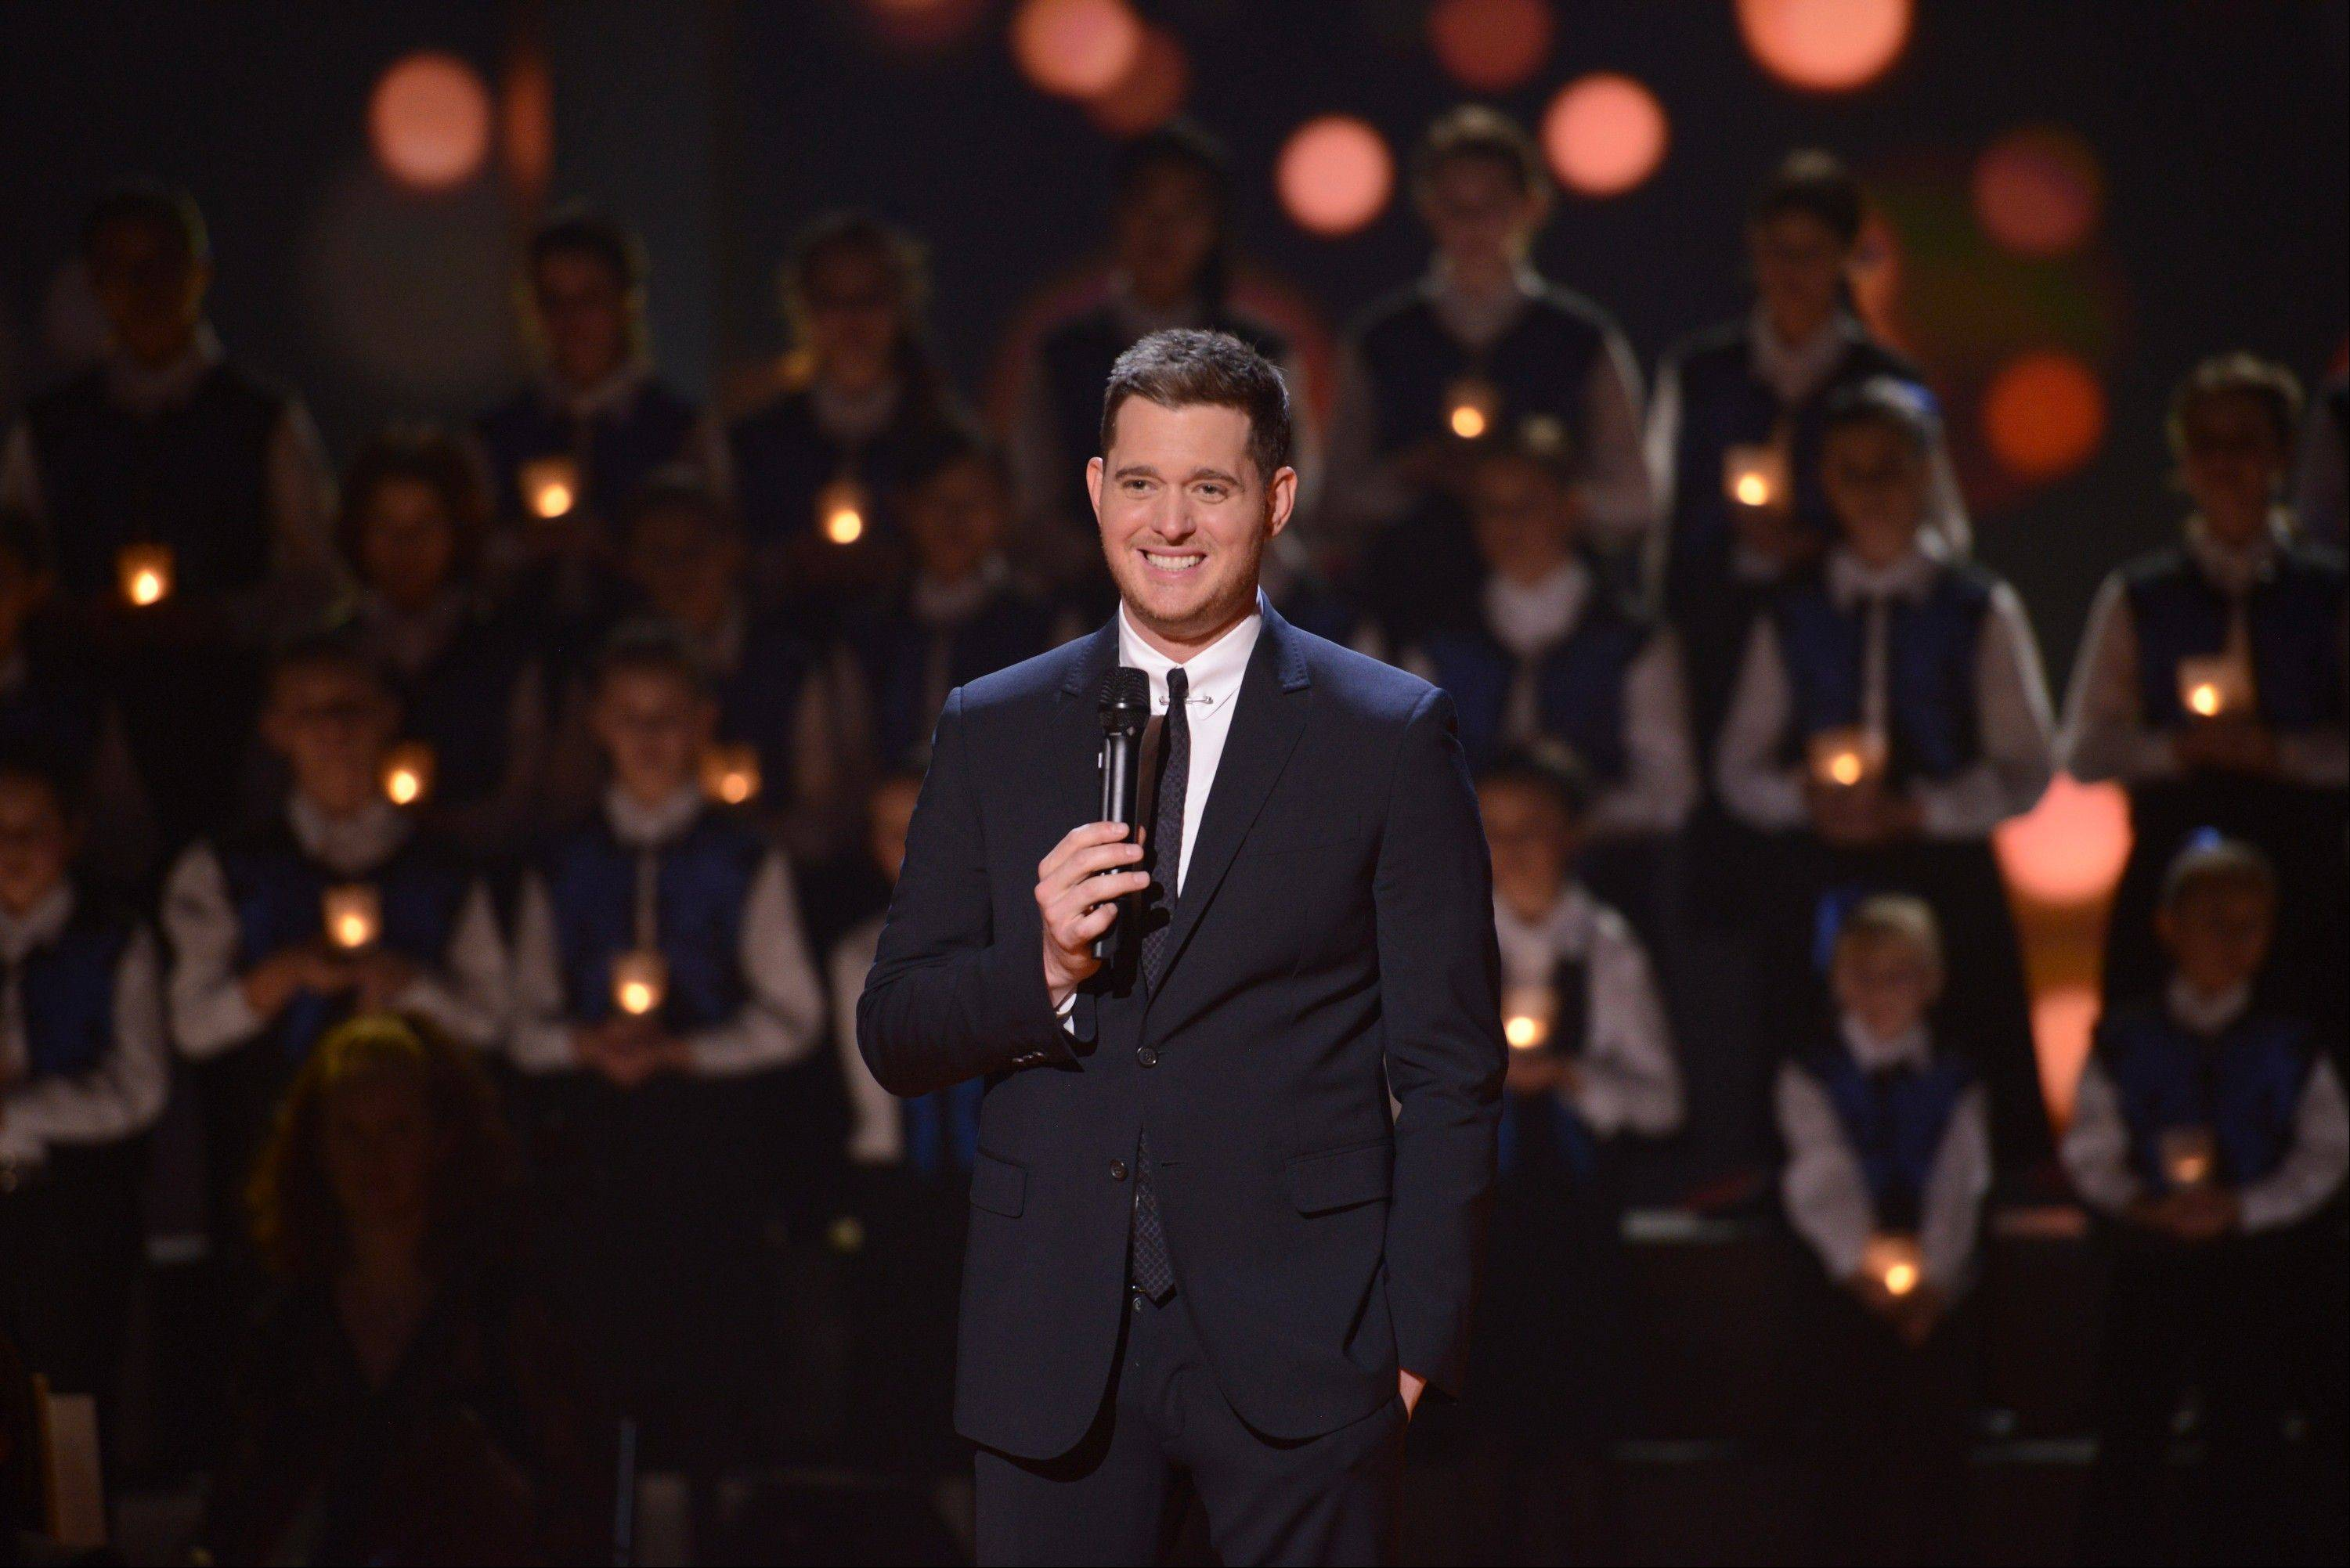 Singer Michael Buble returns to NBC Wednesday, Dec. 18, for his third Christmas special.